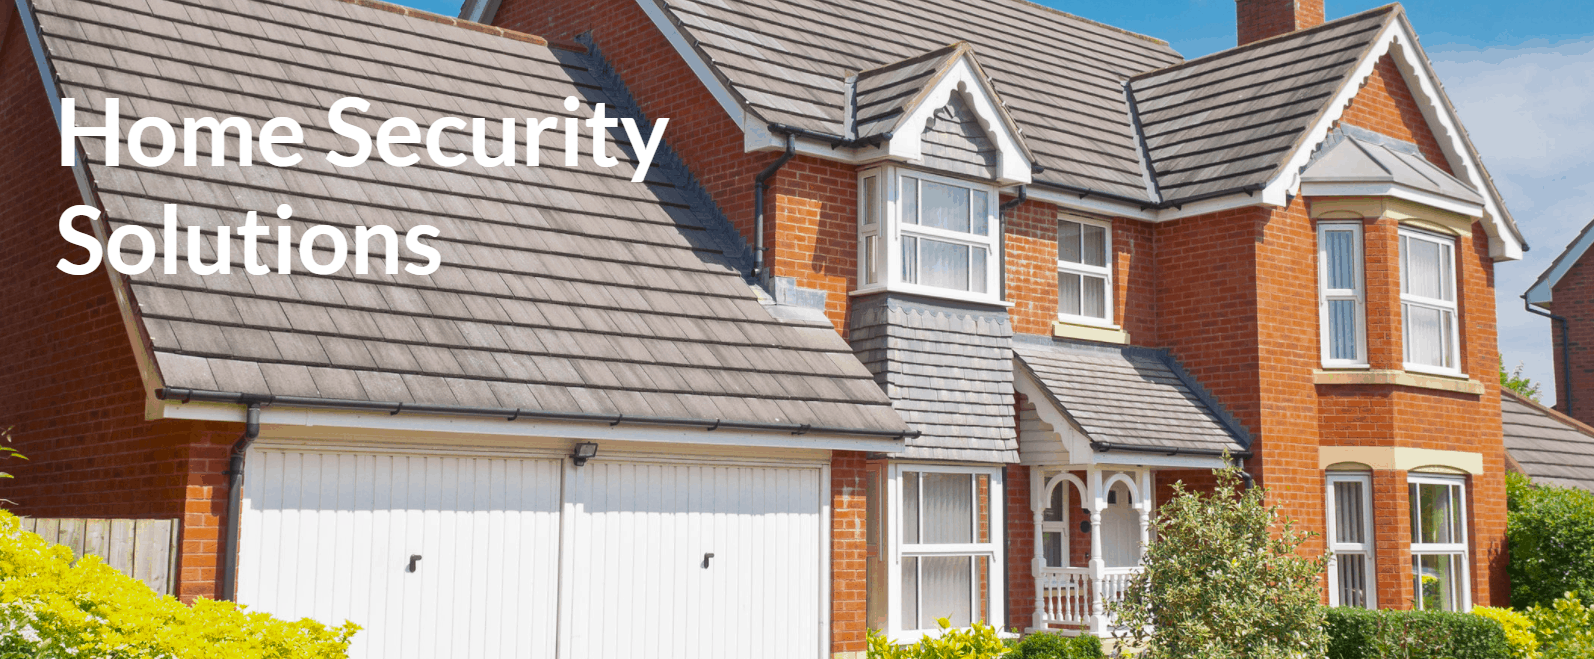 Home Security Systems for Mobile